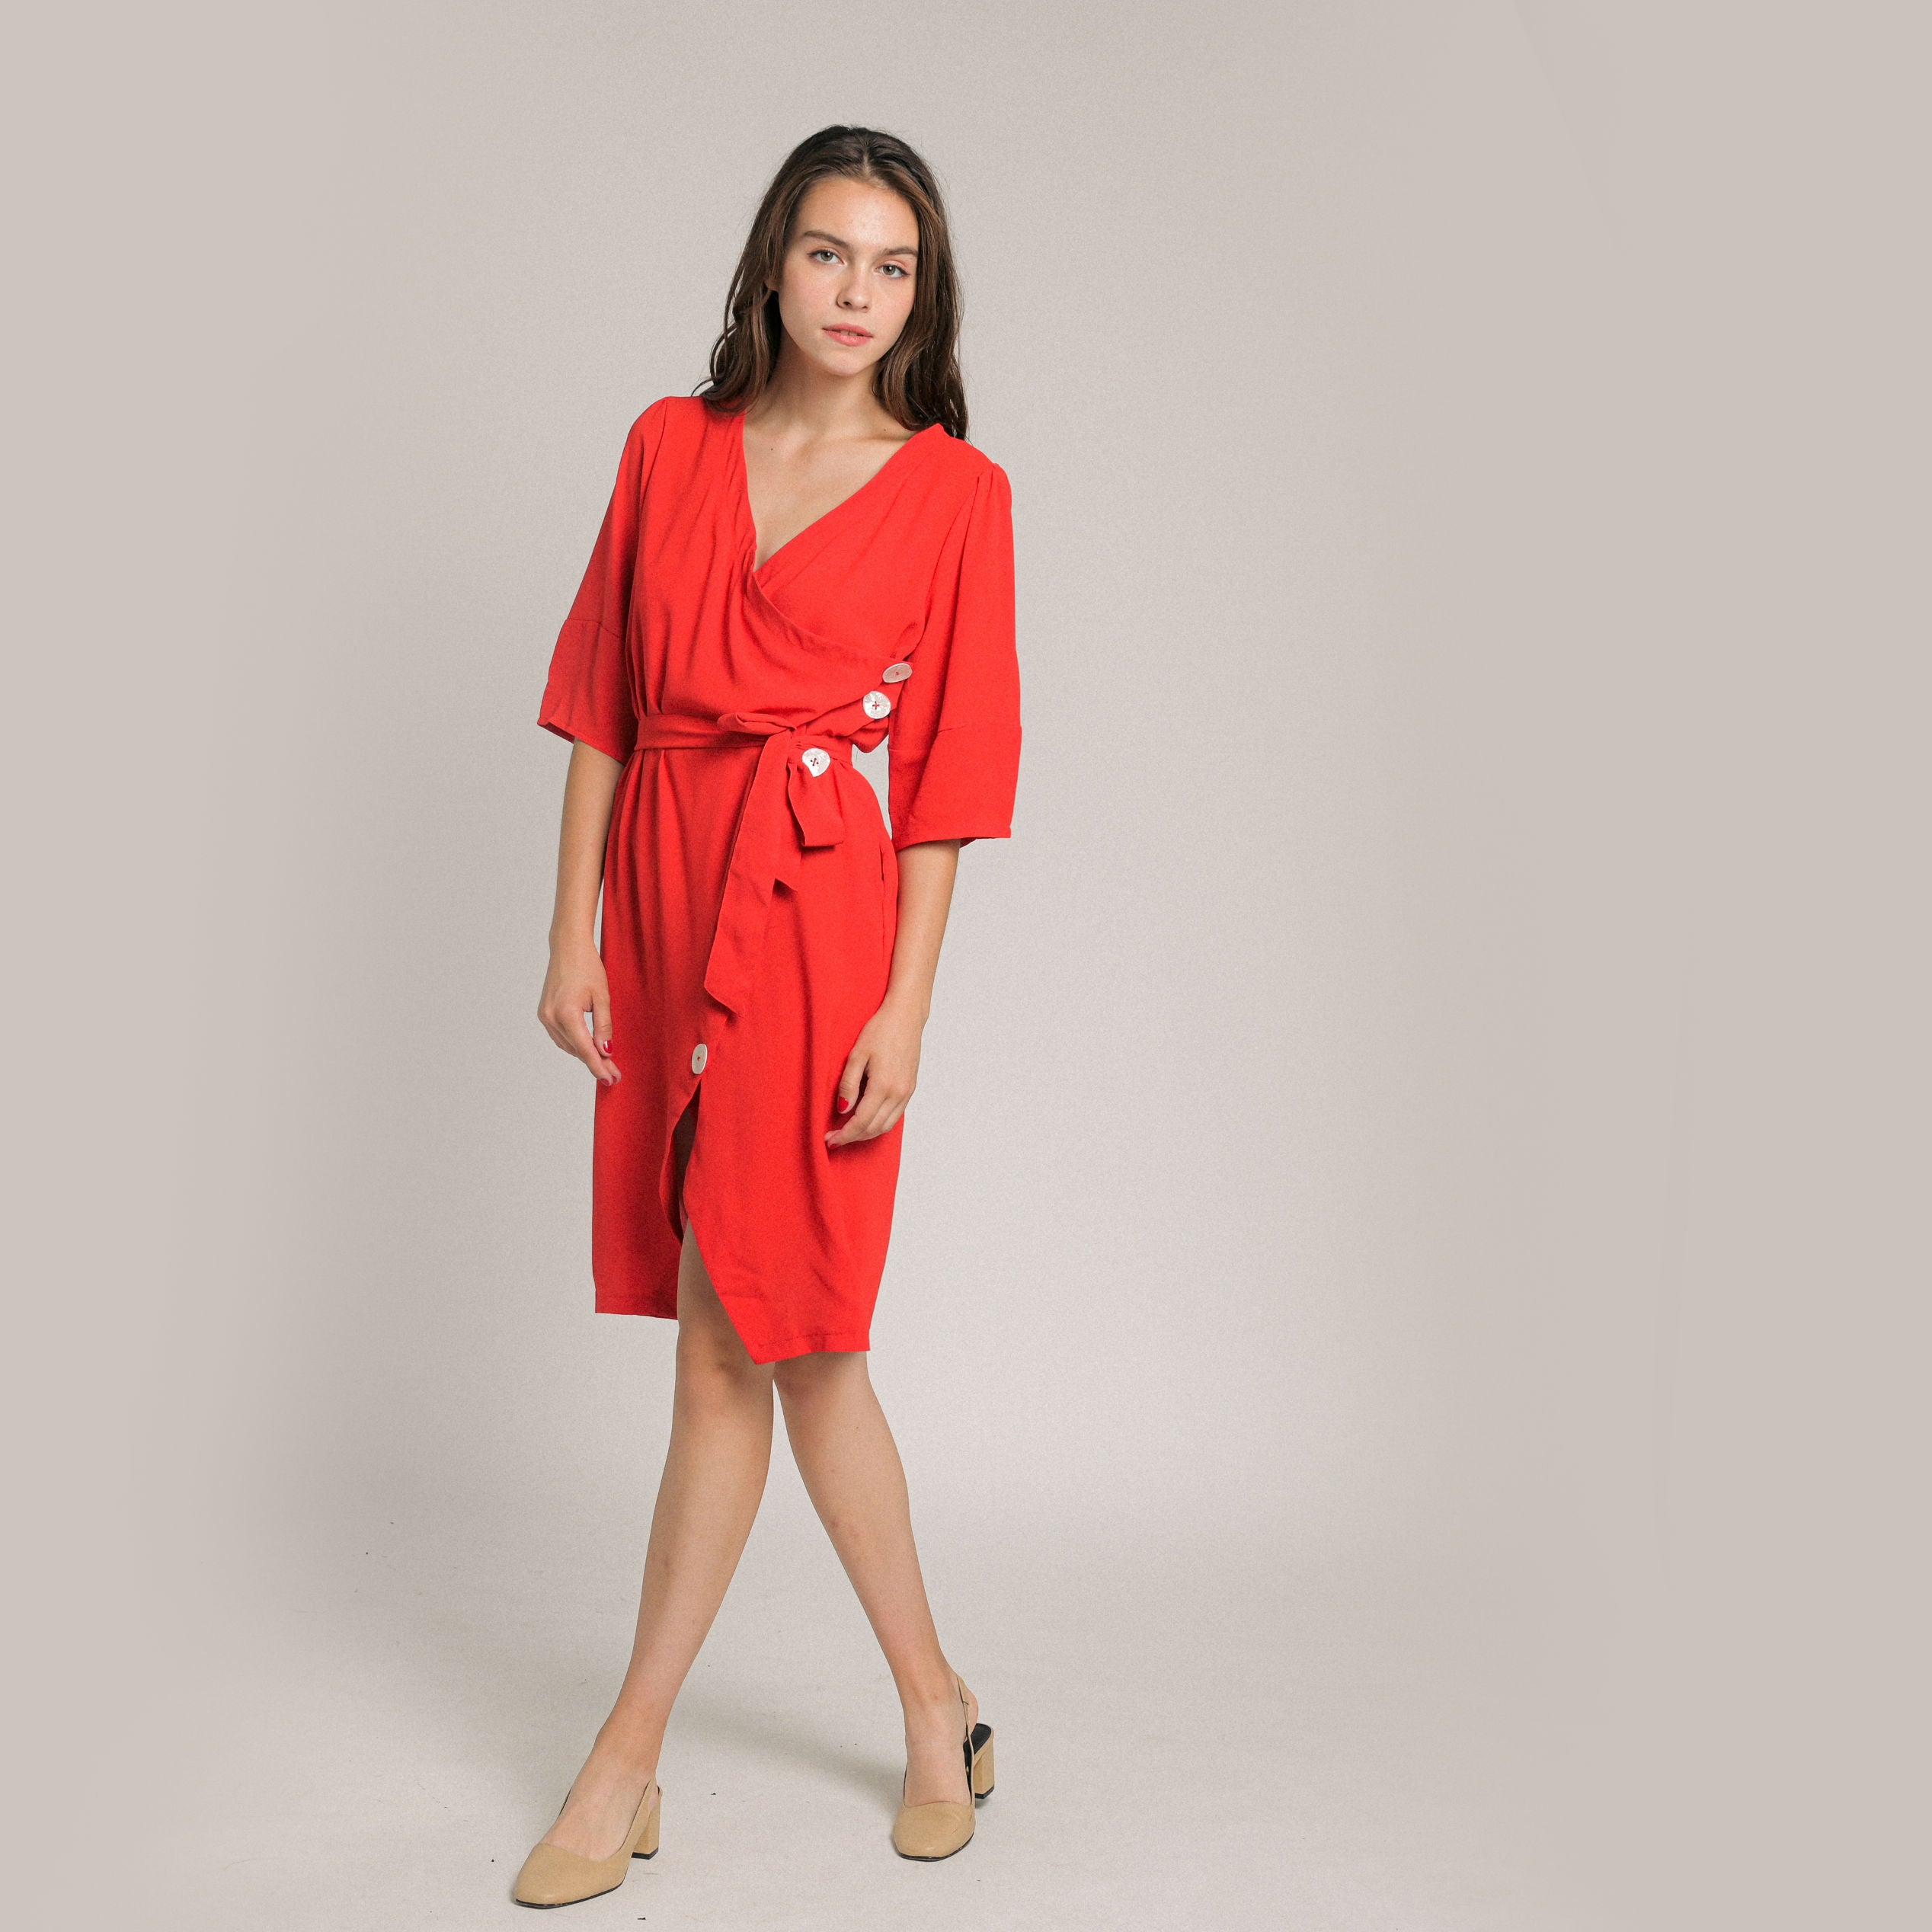 Lune Buttoned Dress - Red